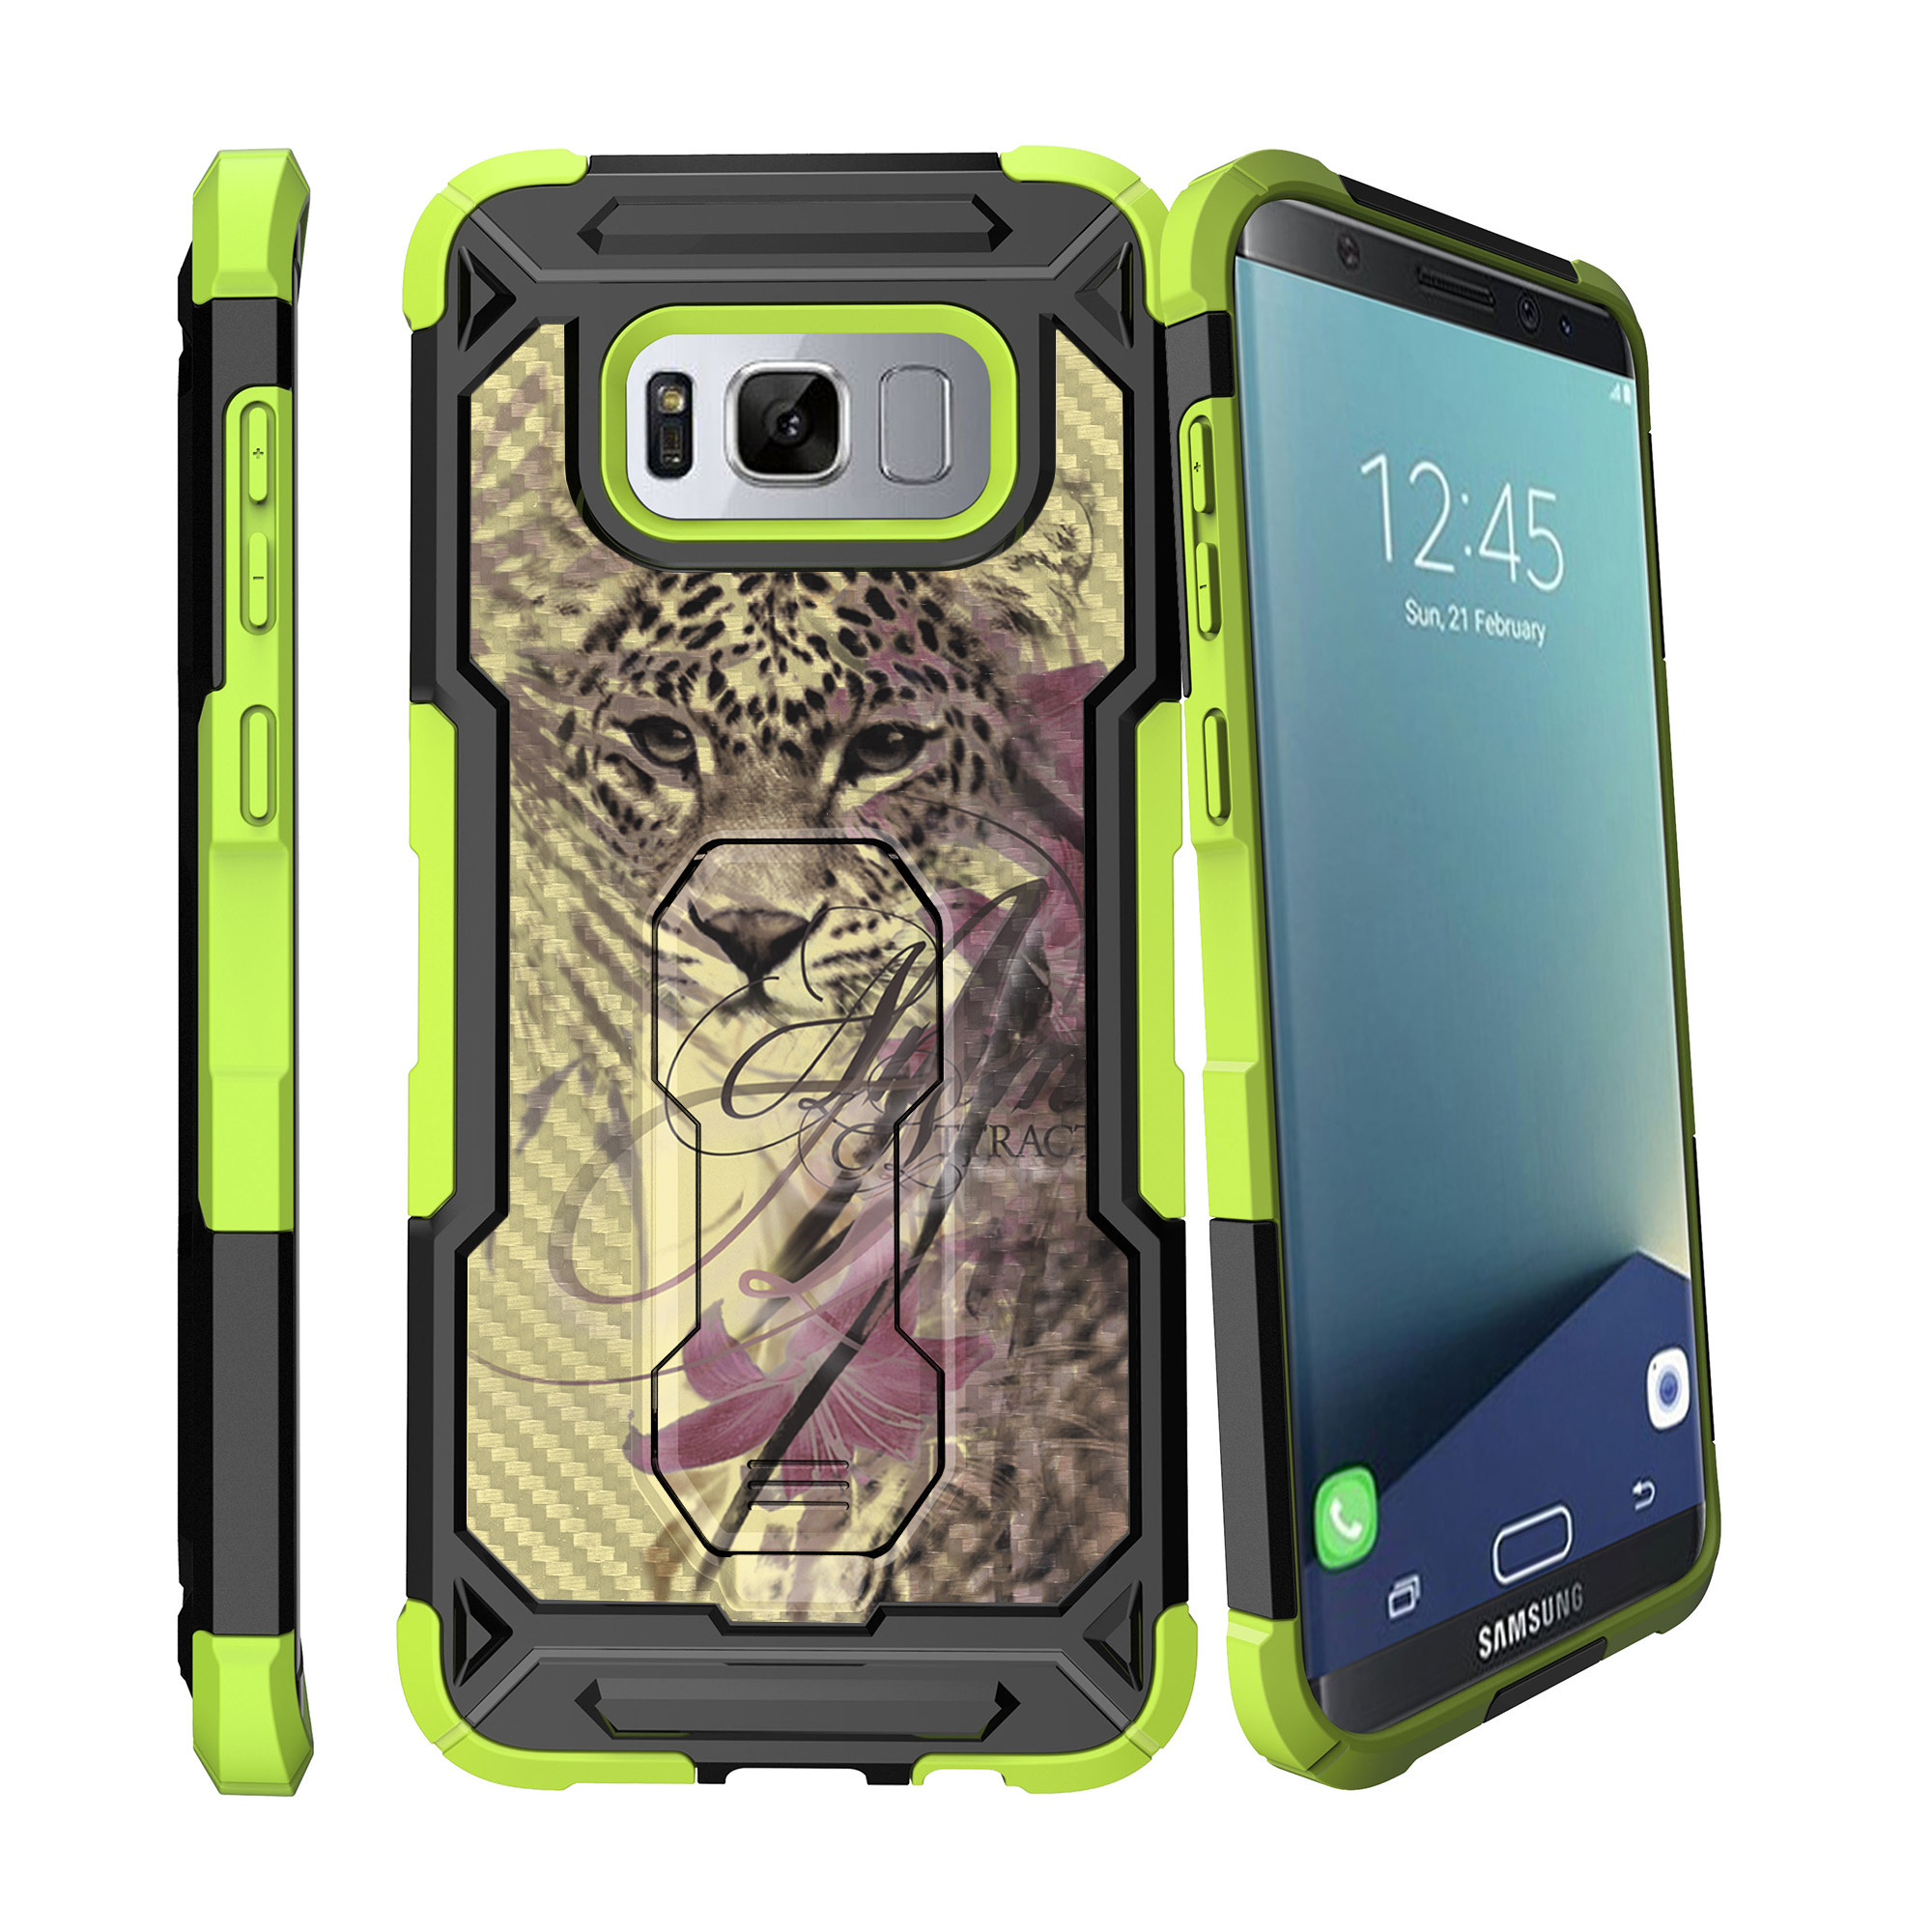 Case for Samsung Galaxy S8 Plus Version [ UFO Defense Case ][Galaxy S8 PLUS SM-G955][Green Silicone] Carbon Fiber Texture Case with Holster + Stand Tribal Collection